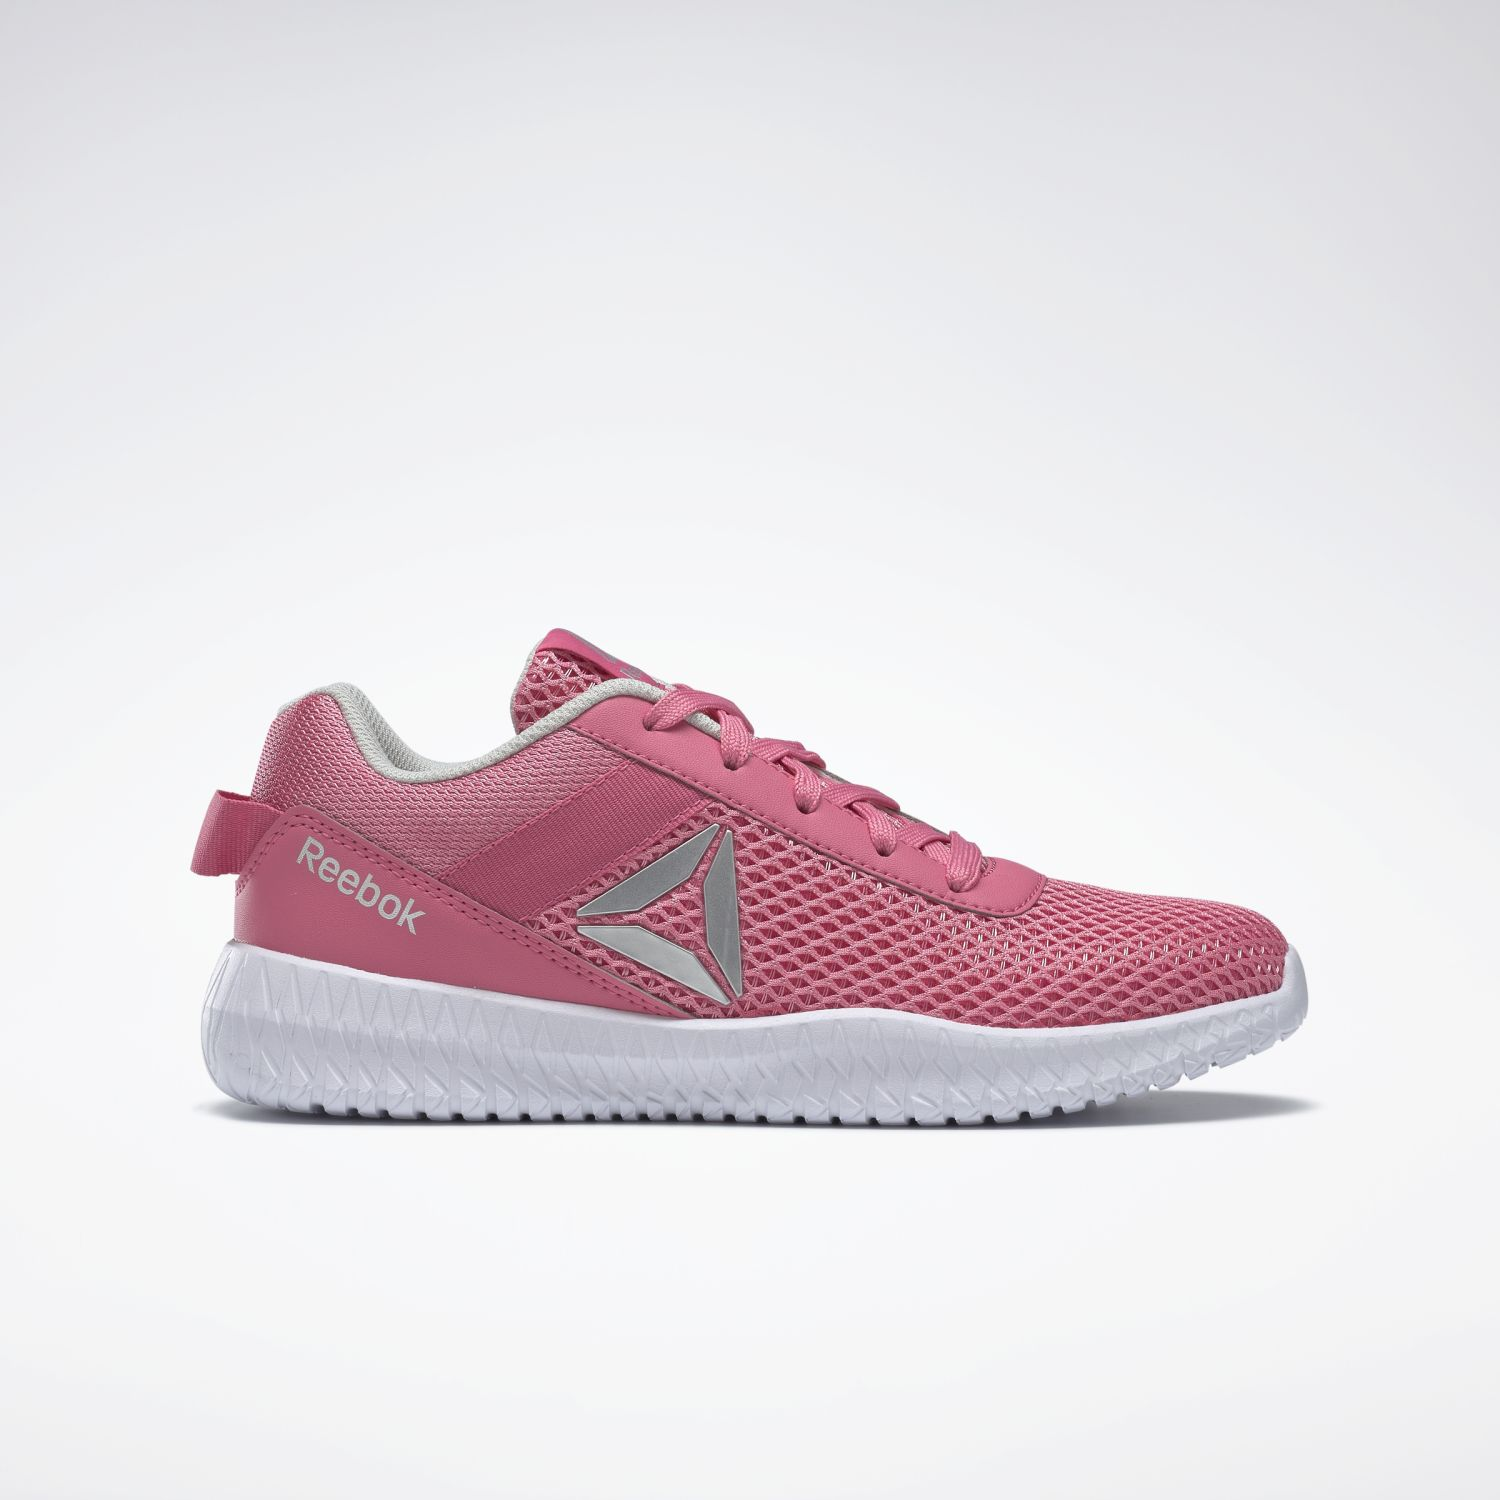 Reebok reebok flexagon energy Rosado Fitness y Cross-Training